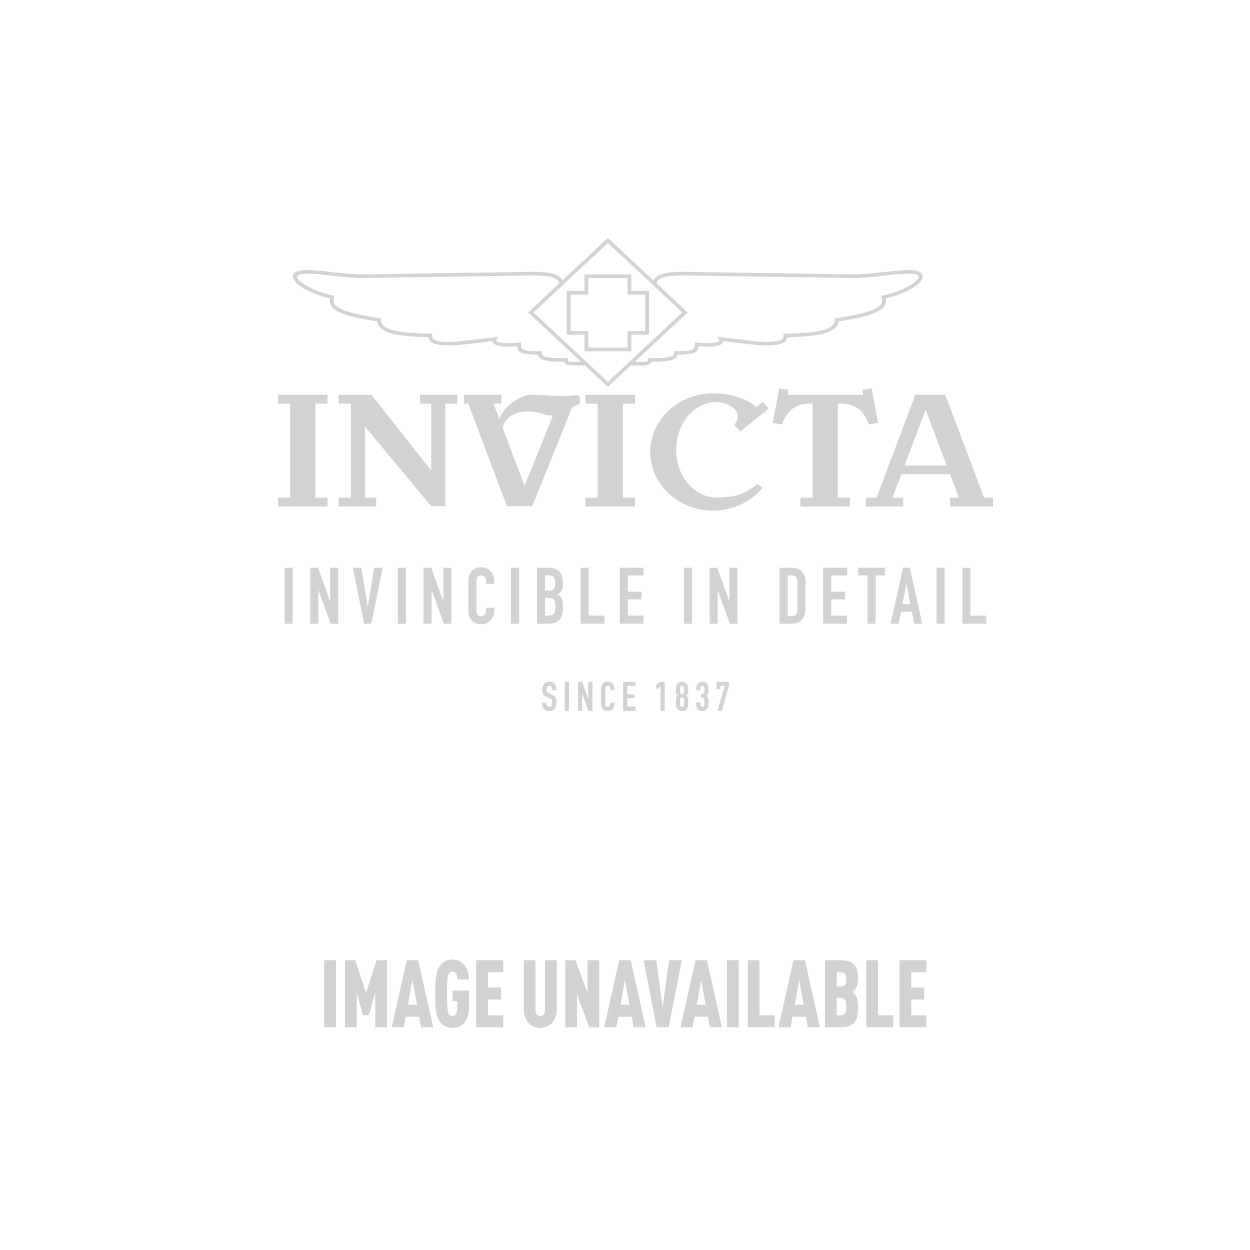 Invicta 21cm Men's Bracelets in Brown - Model J0204